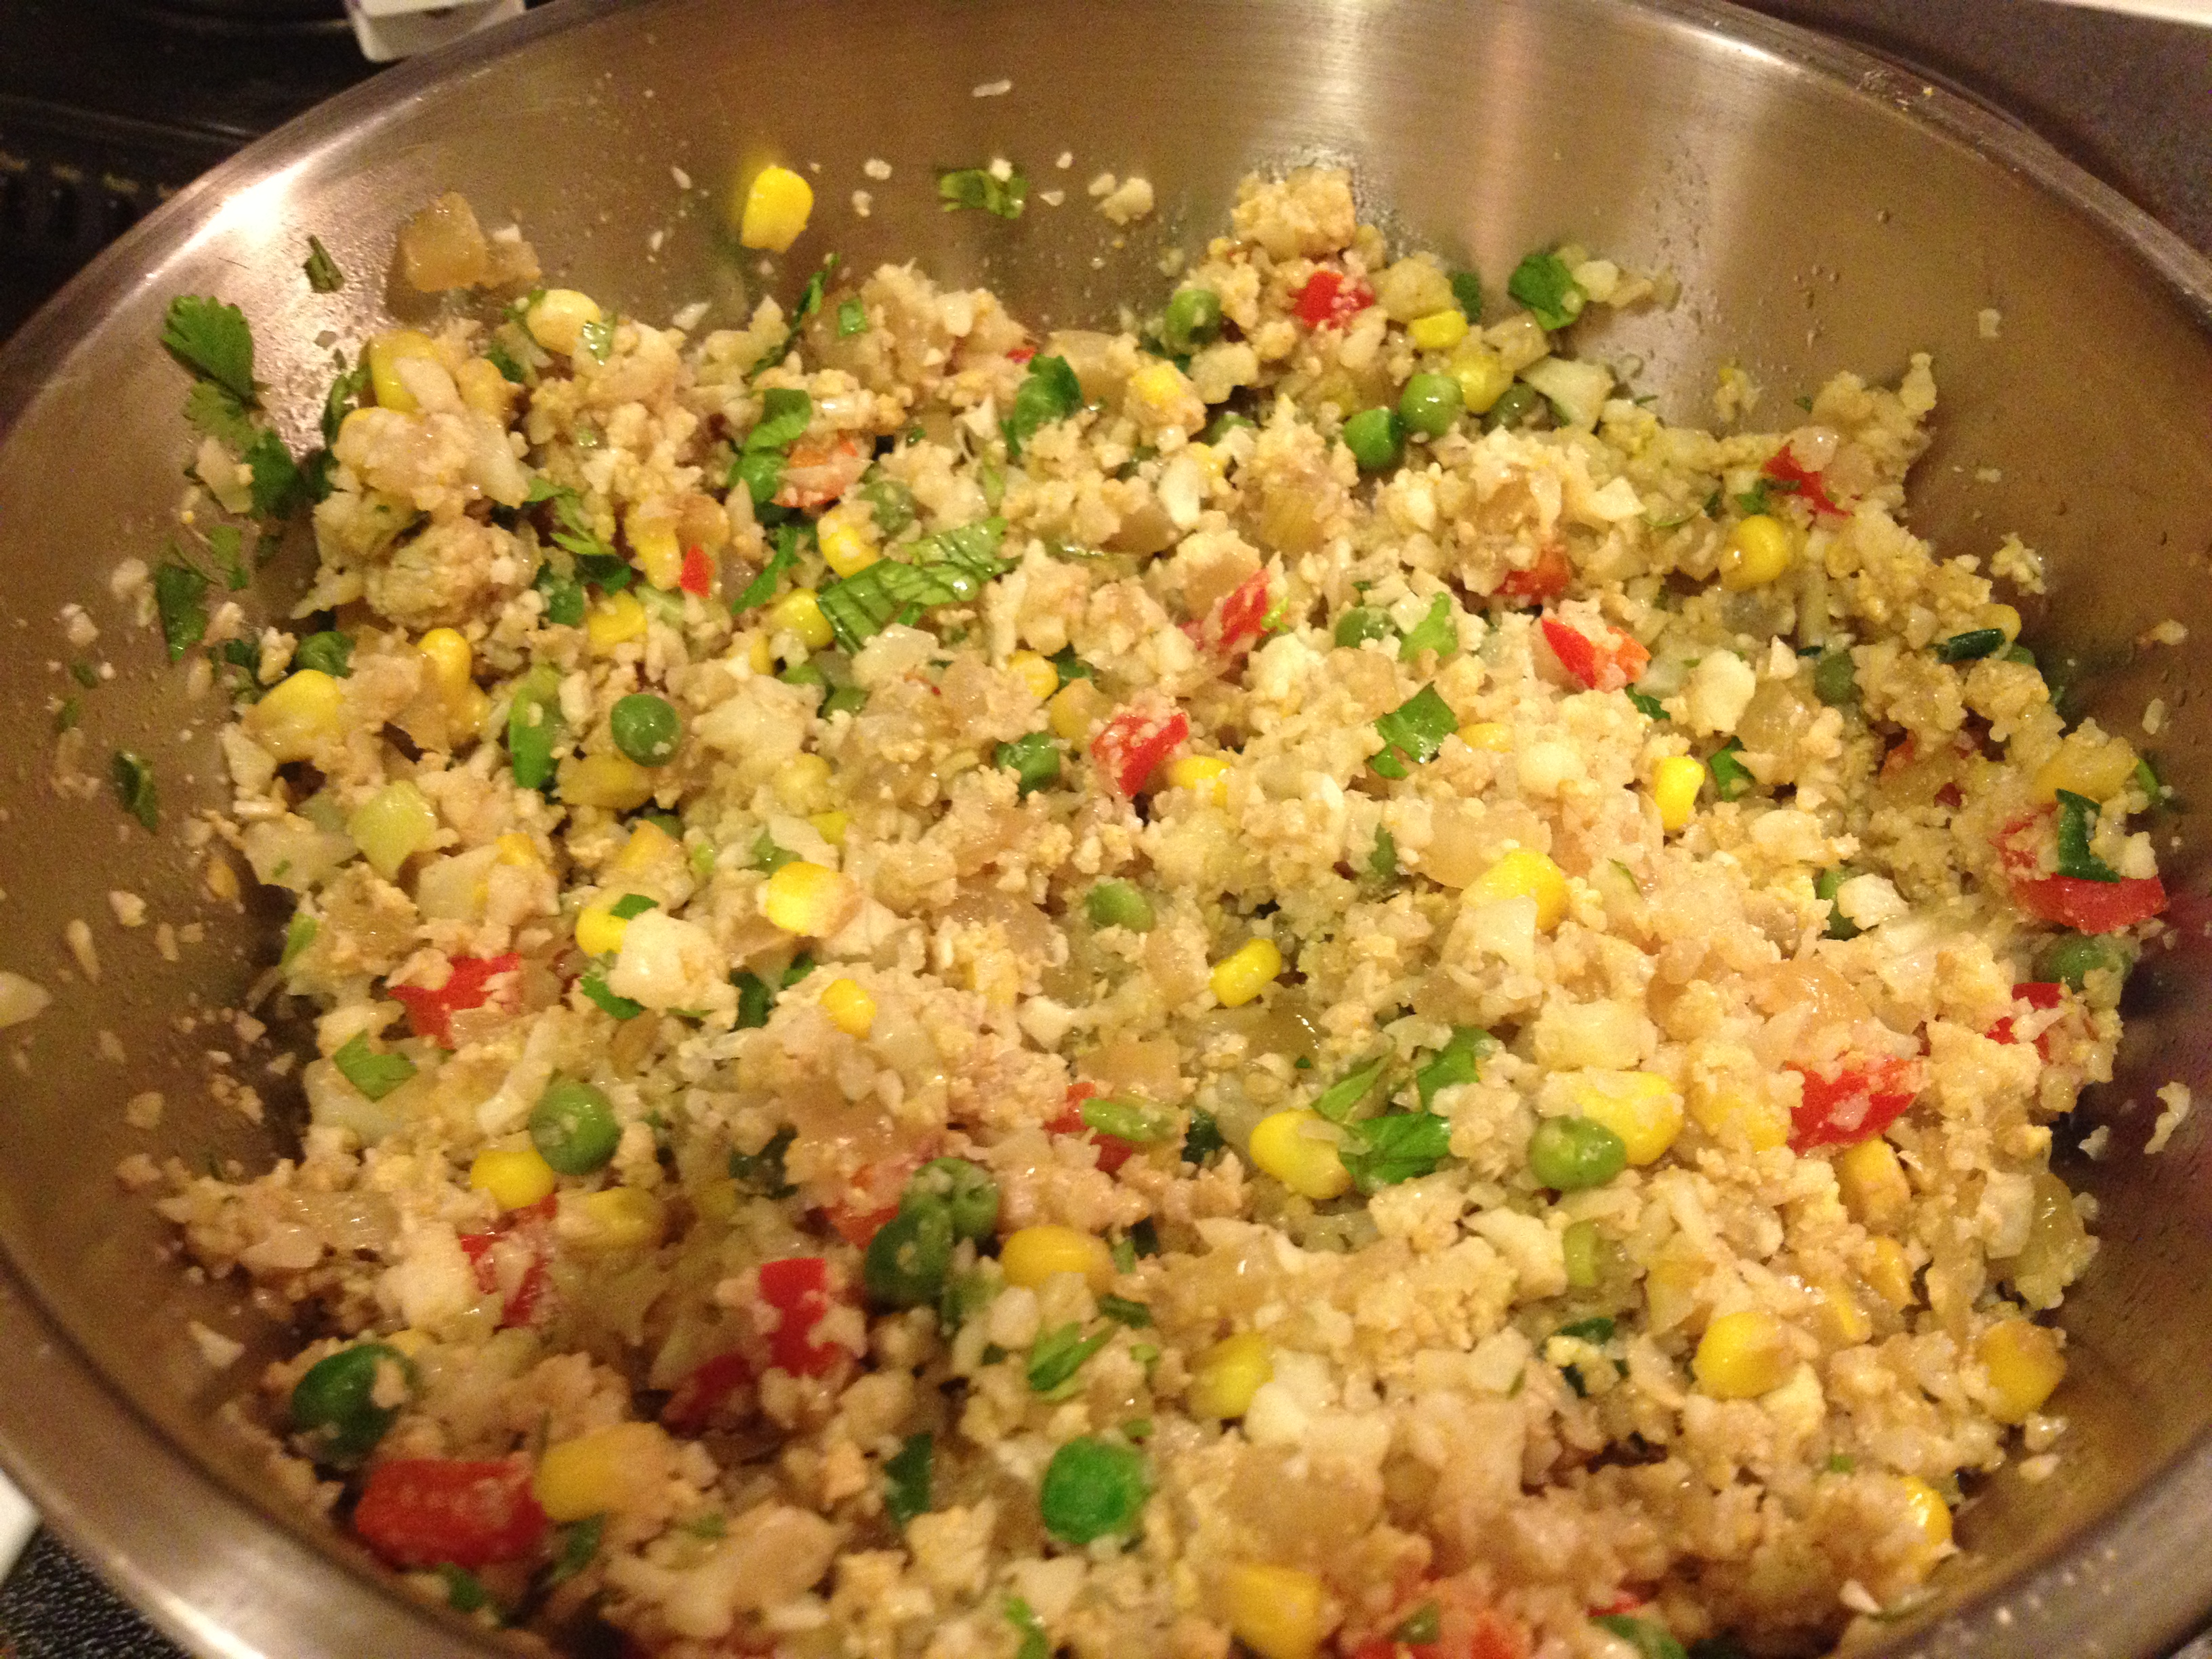 Cauliflower Faux Fried Rice from Grabbing the Gusto